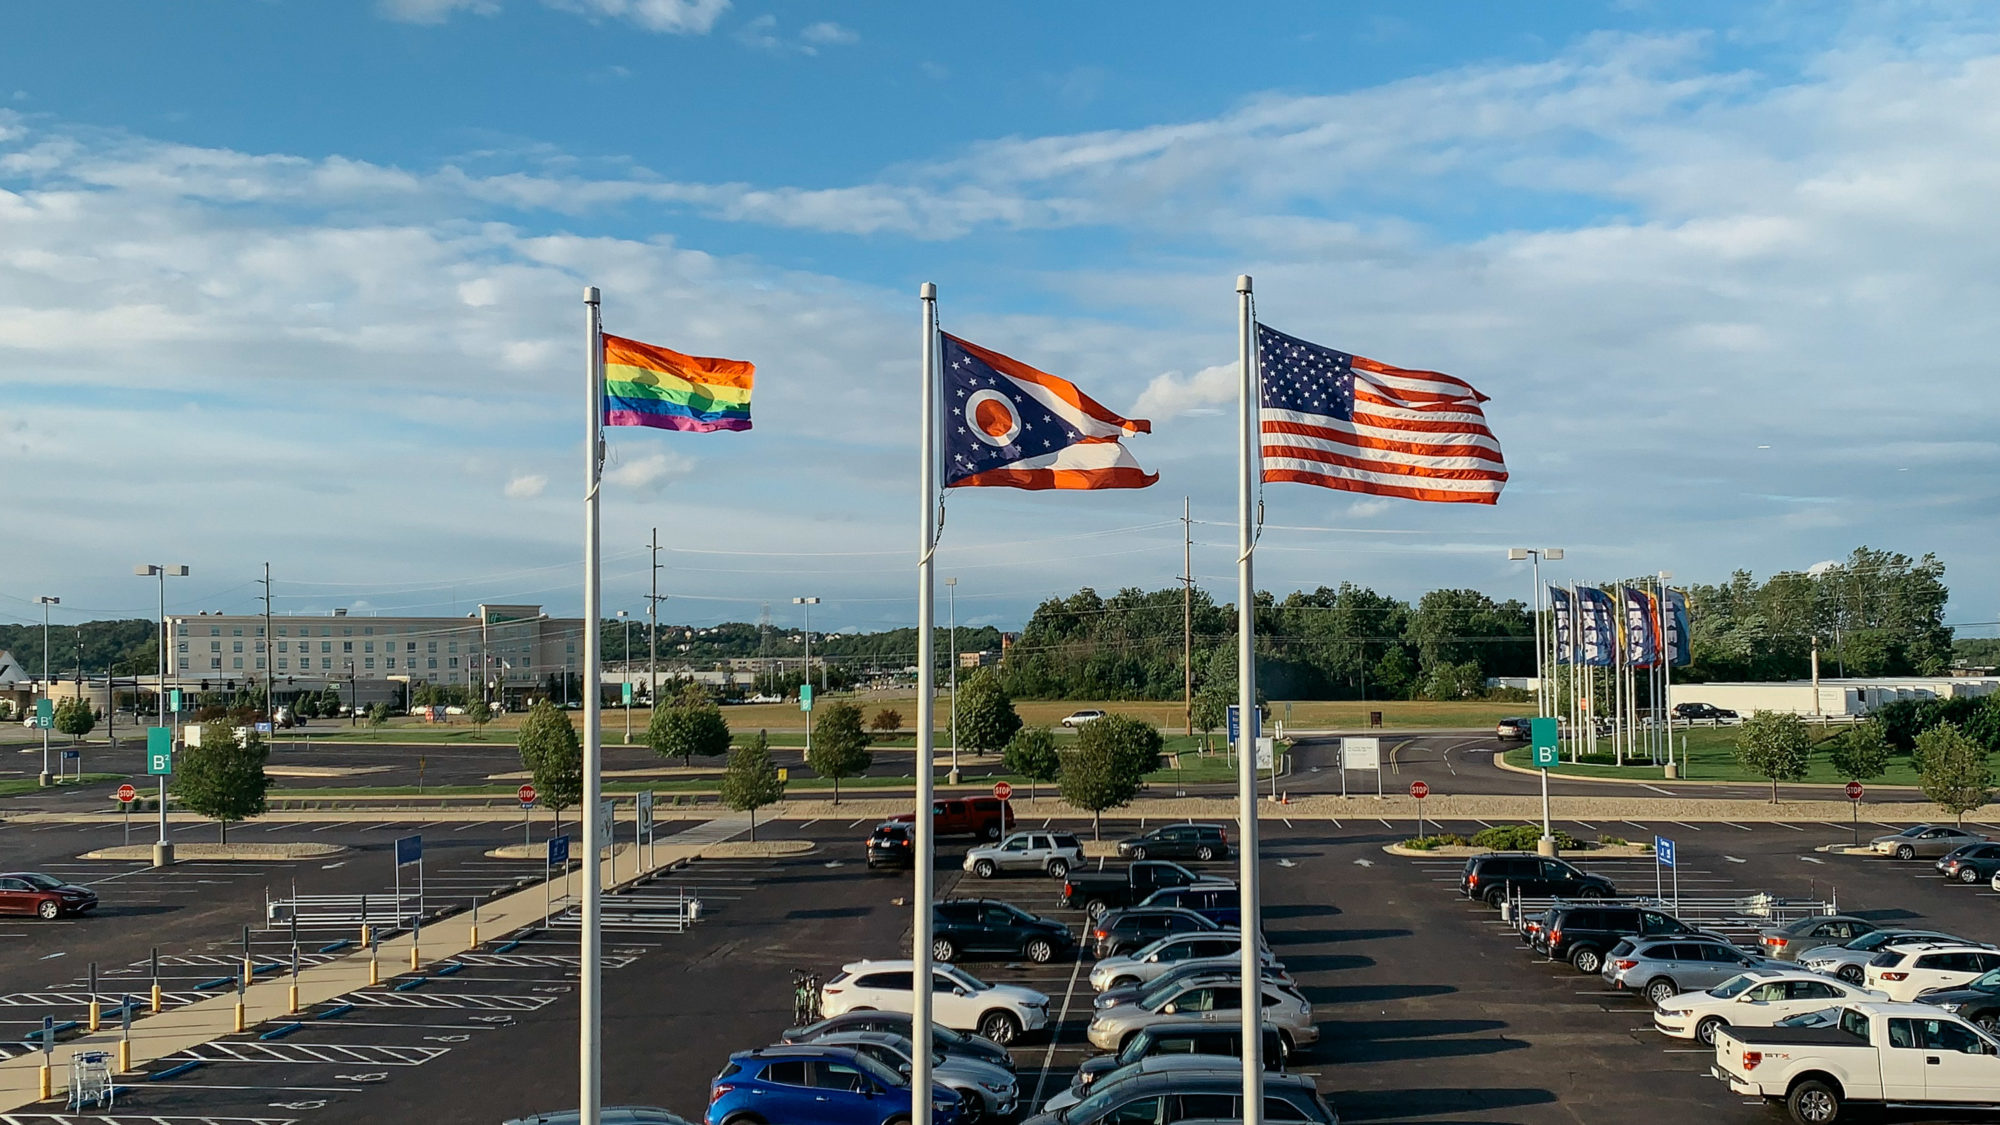 Ohio, Pride and American flags outside of IKEA store